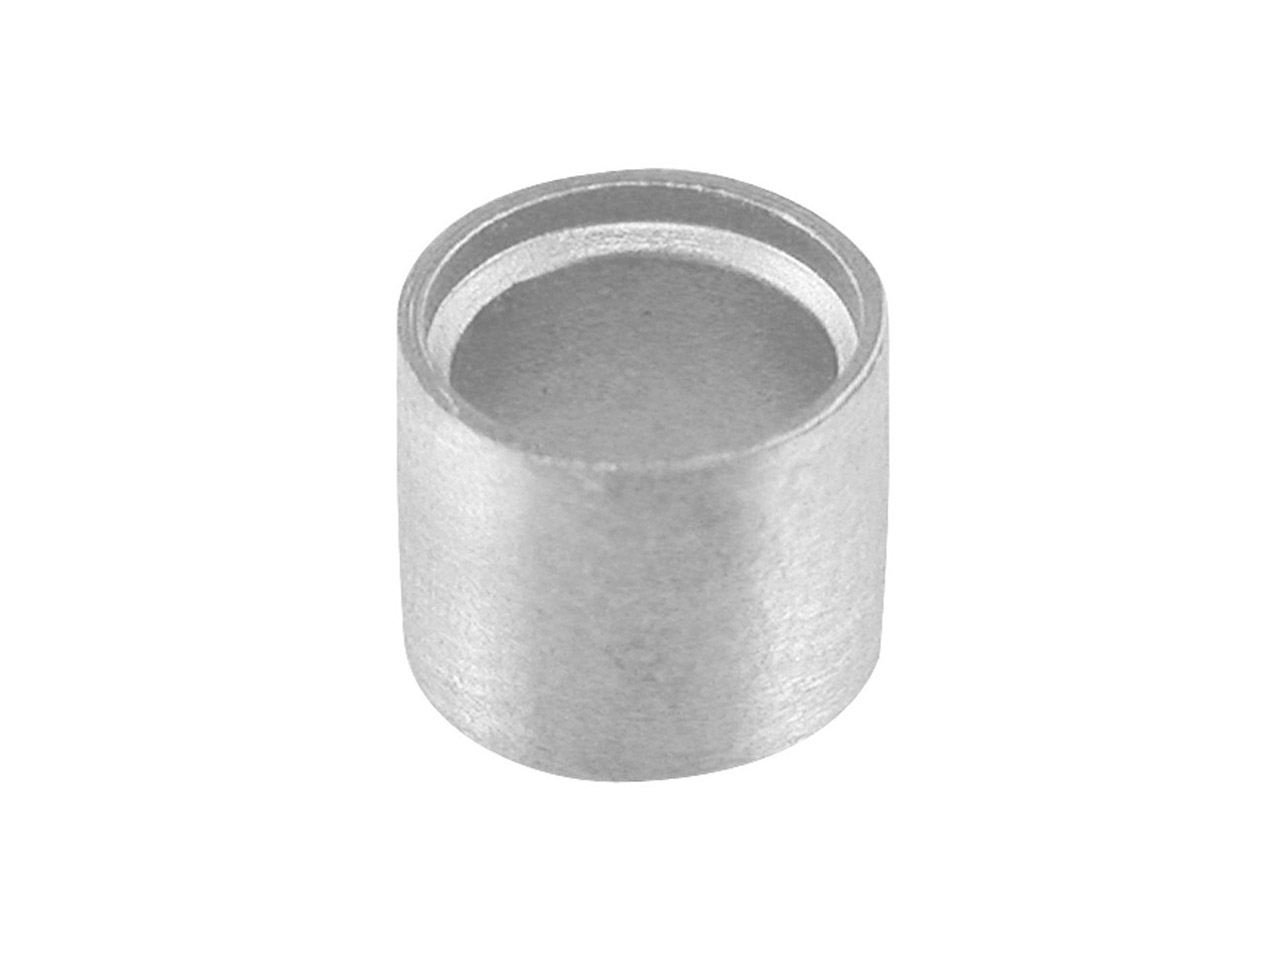 9ct White Gold Tube Setting 5.0mm  Rts50 Semi Finished Cast Collet